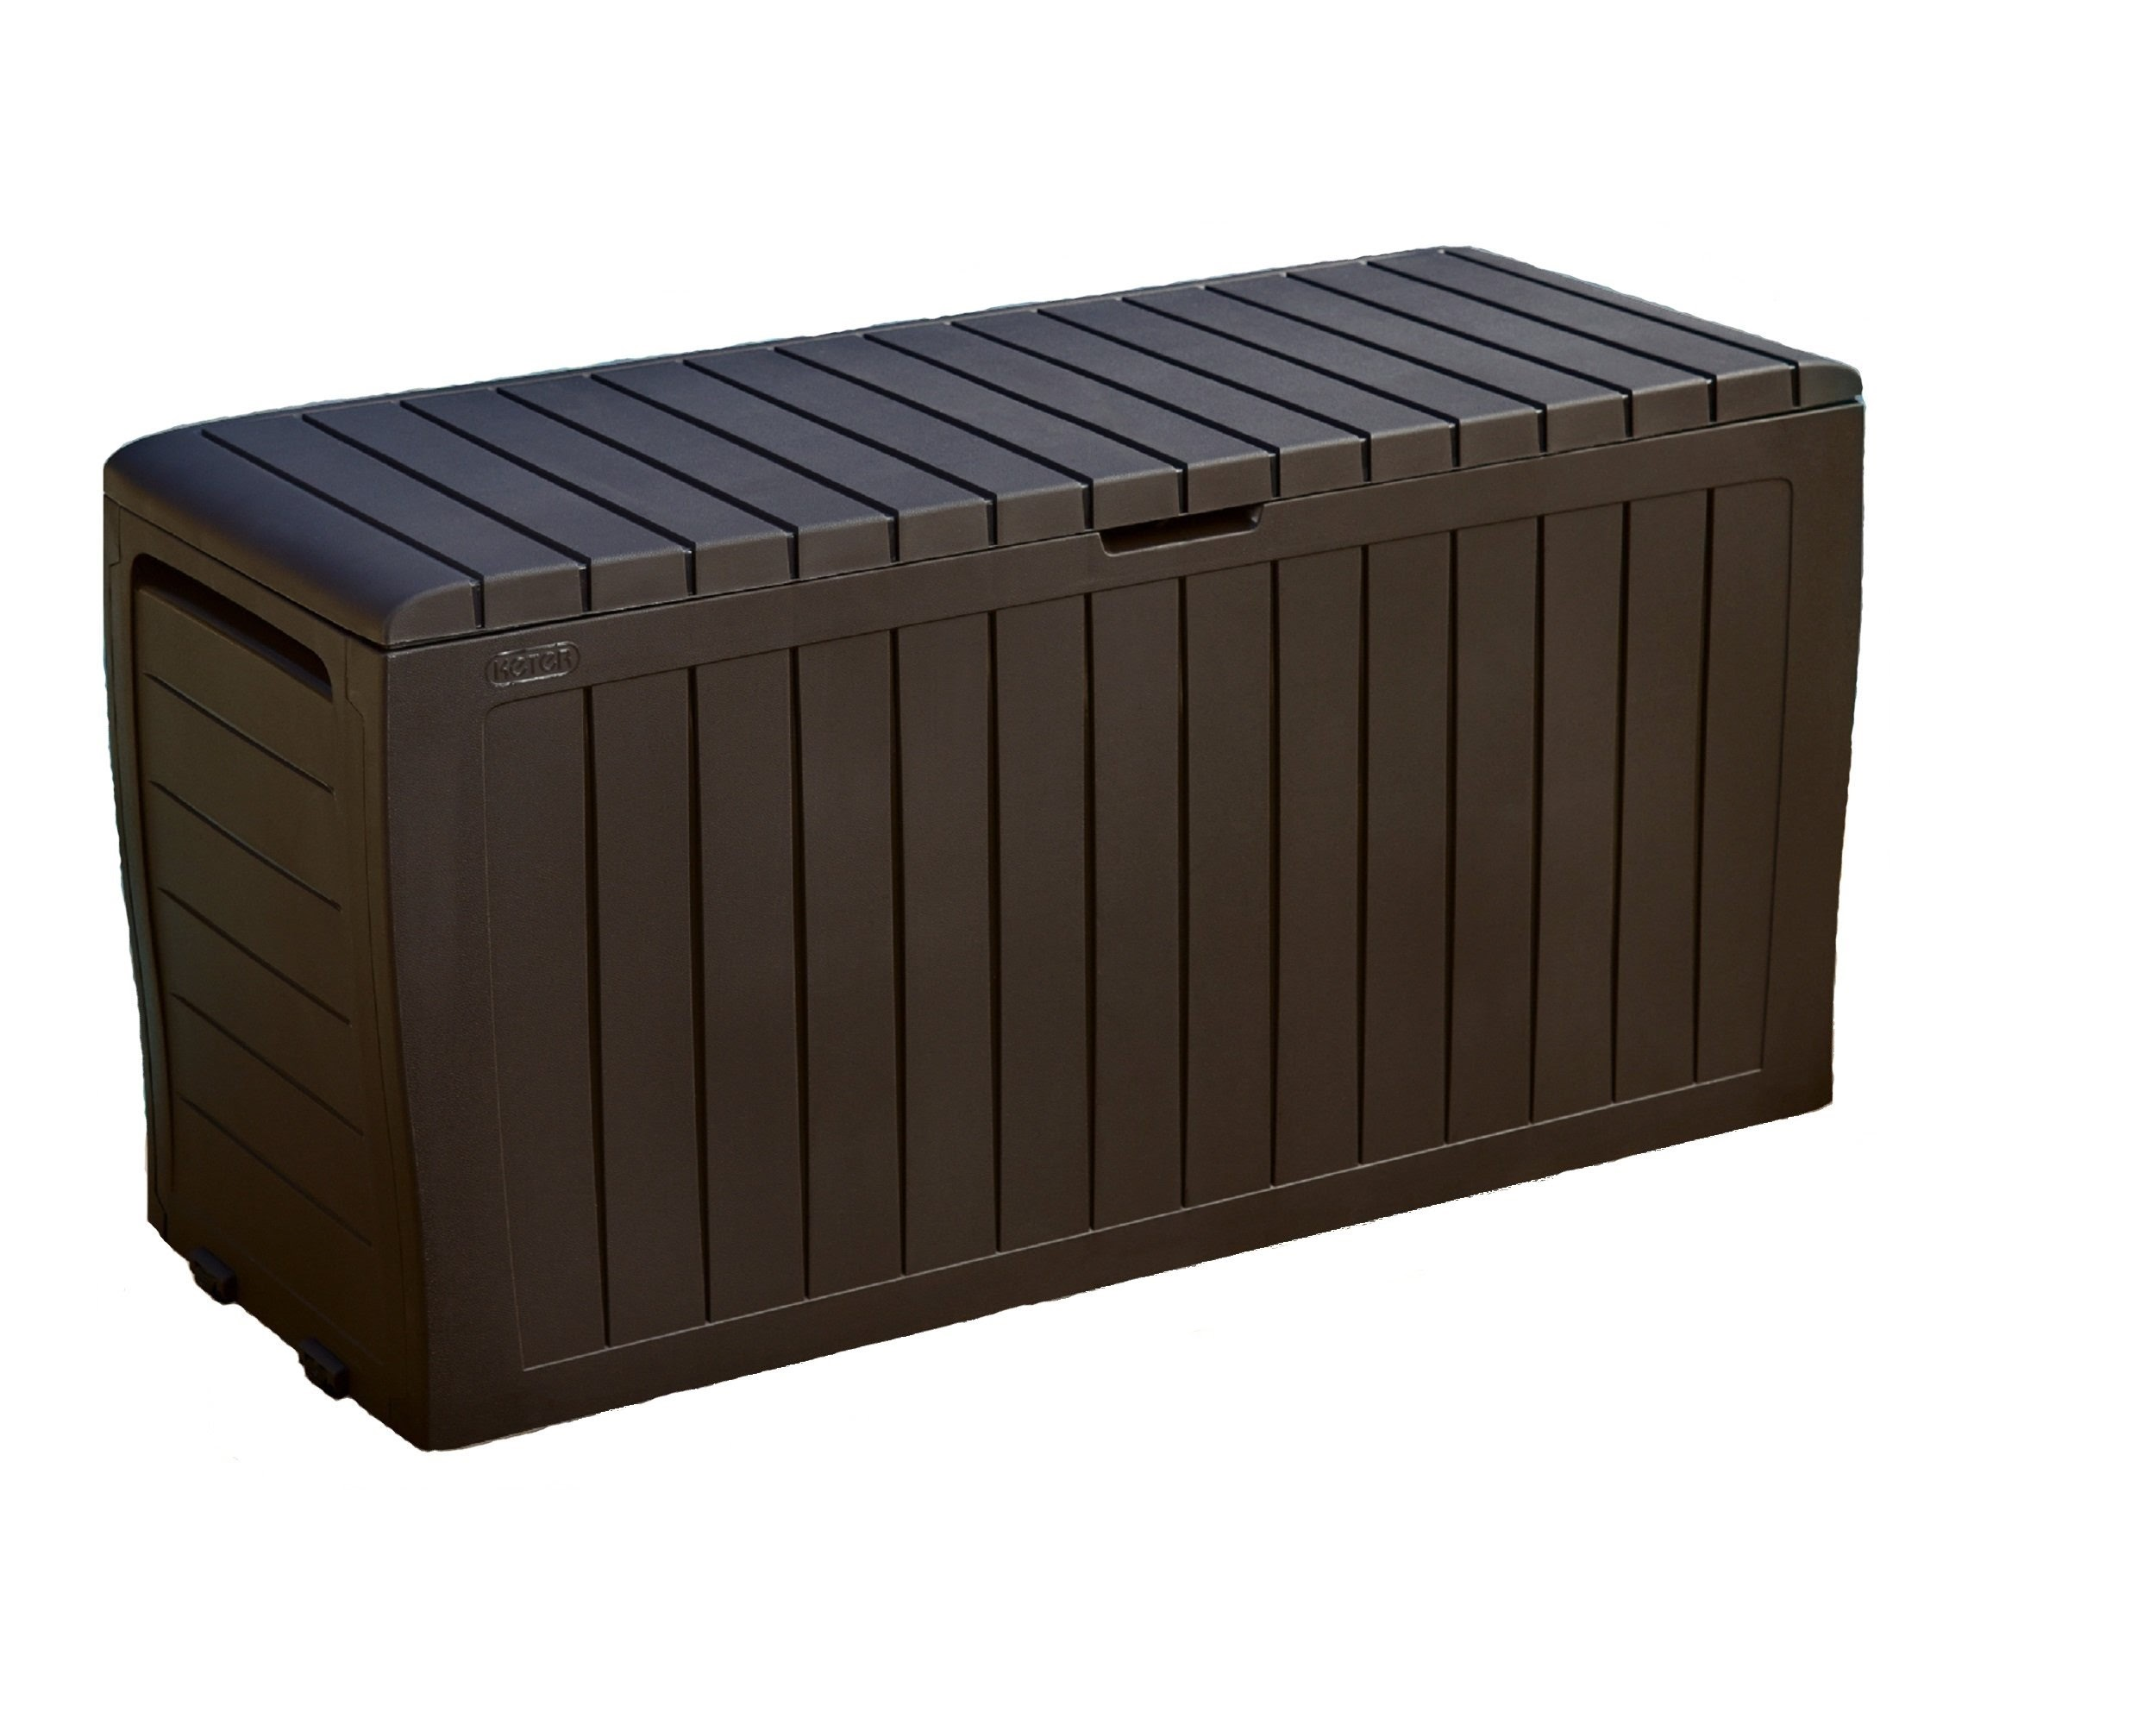 Product Image Keter Marvel Plus 71 Gallon Outdoor Storage Deck Box,  Espresso Brown